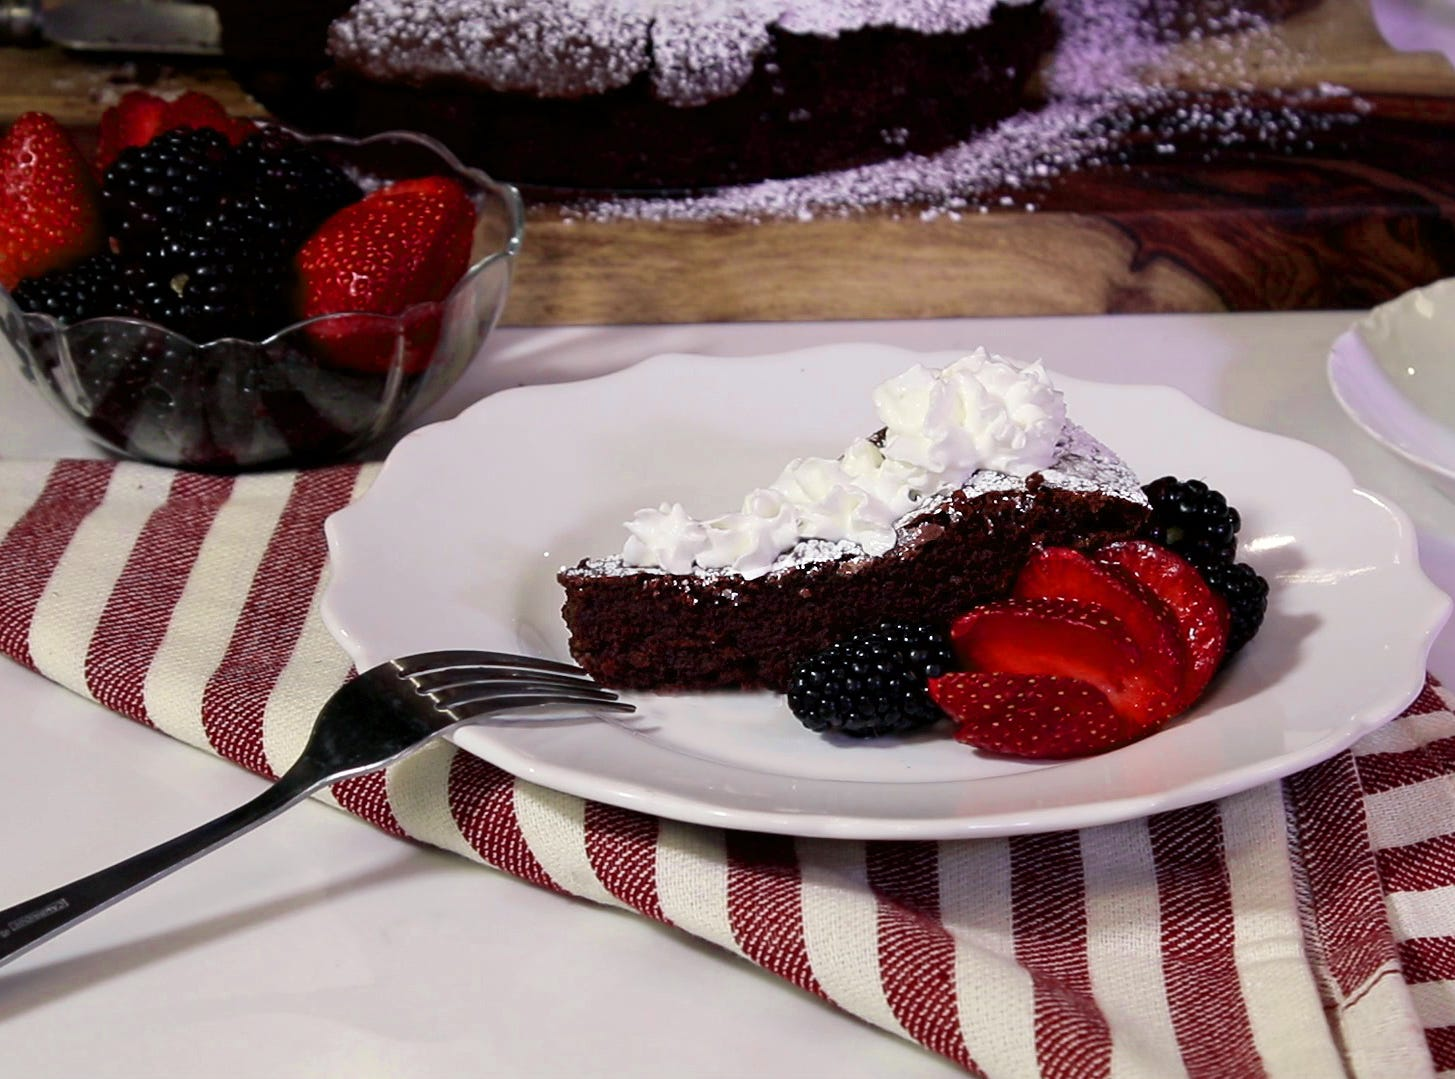 Garnish your decadent flourless chocolate cake with whipped cream and berries.